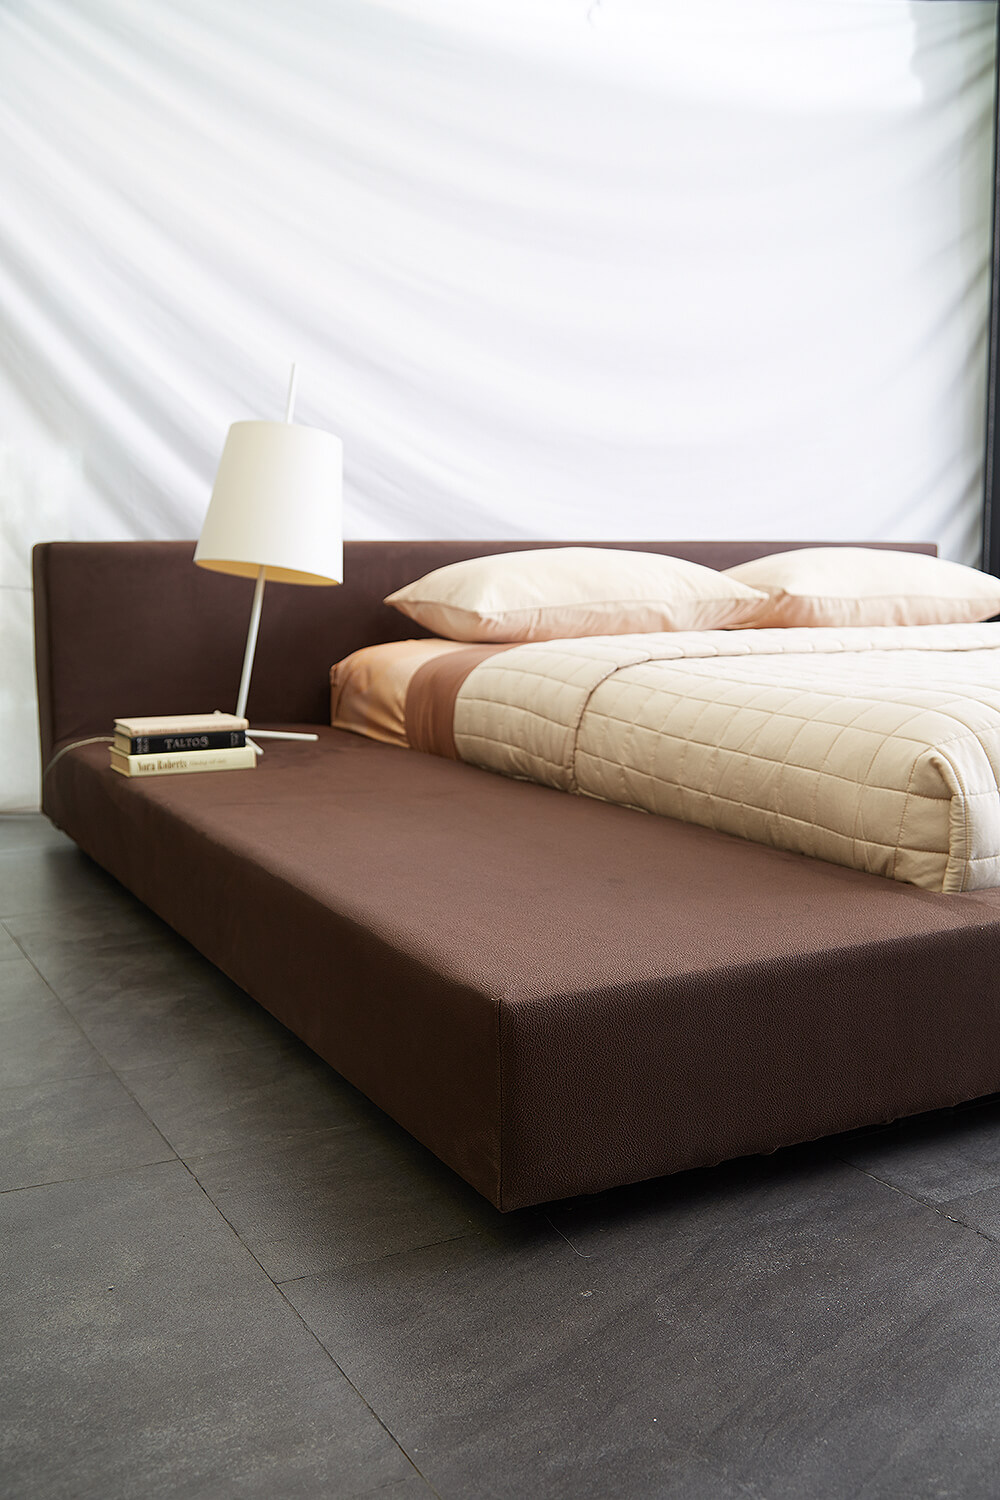 Loto Mobili Bed - Brooks